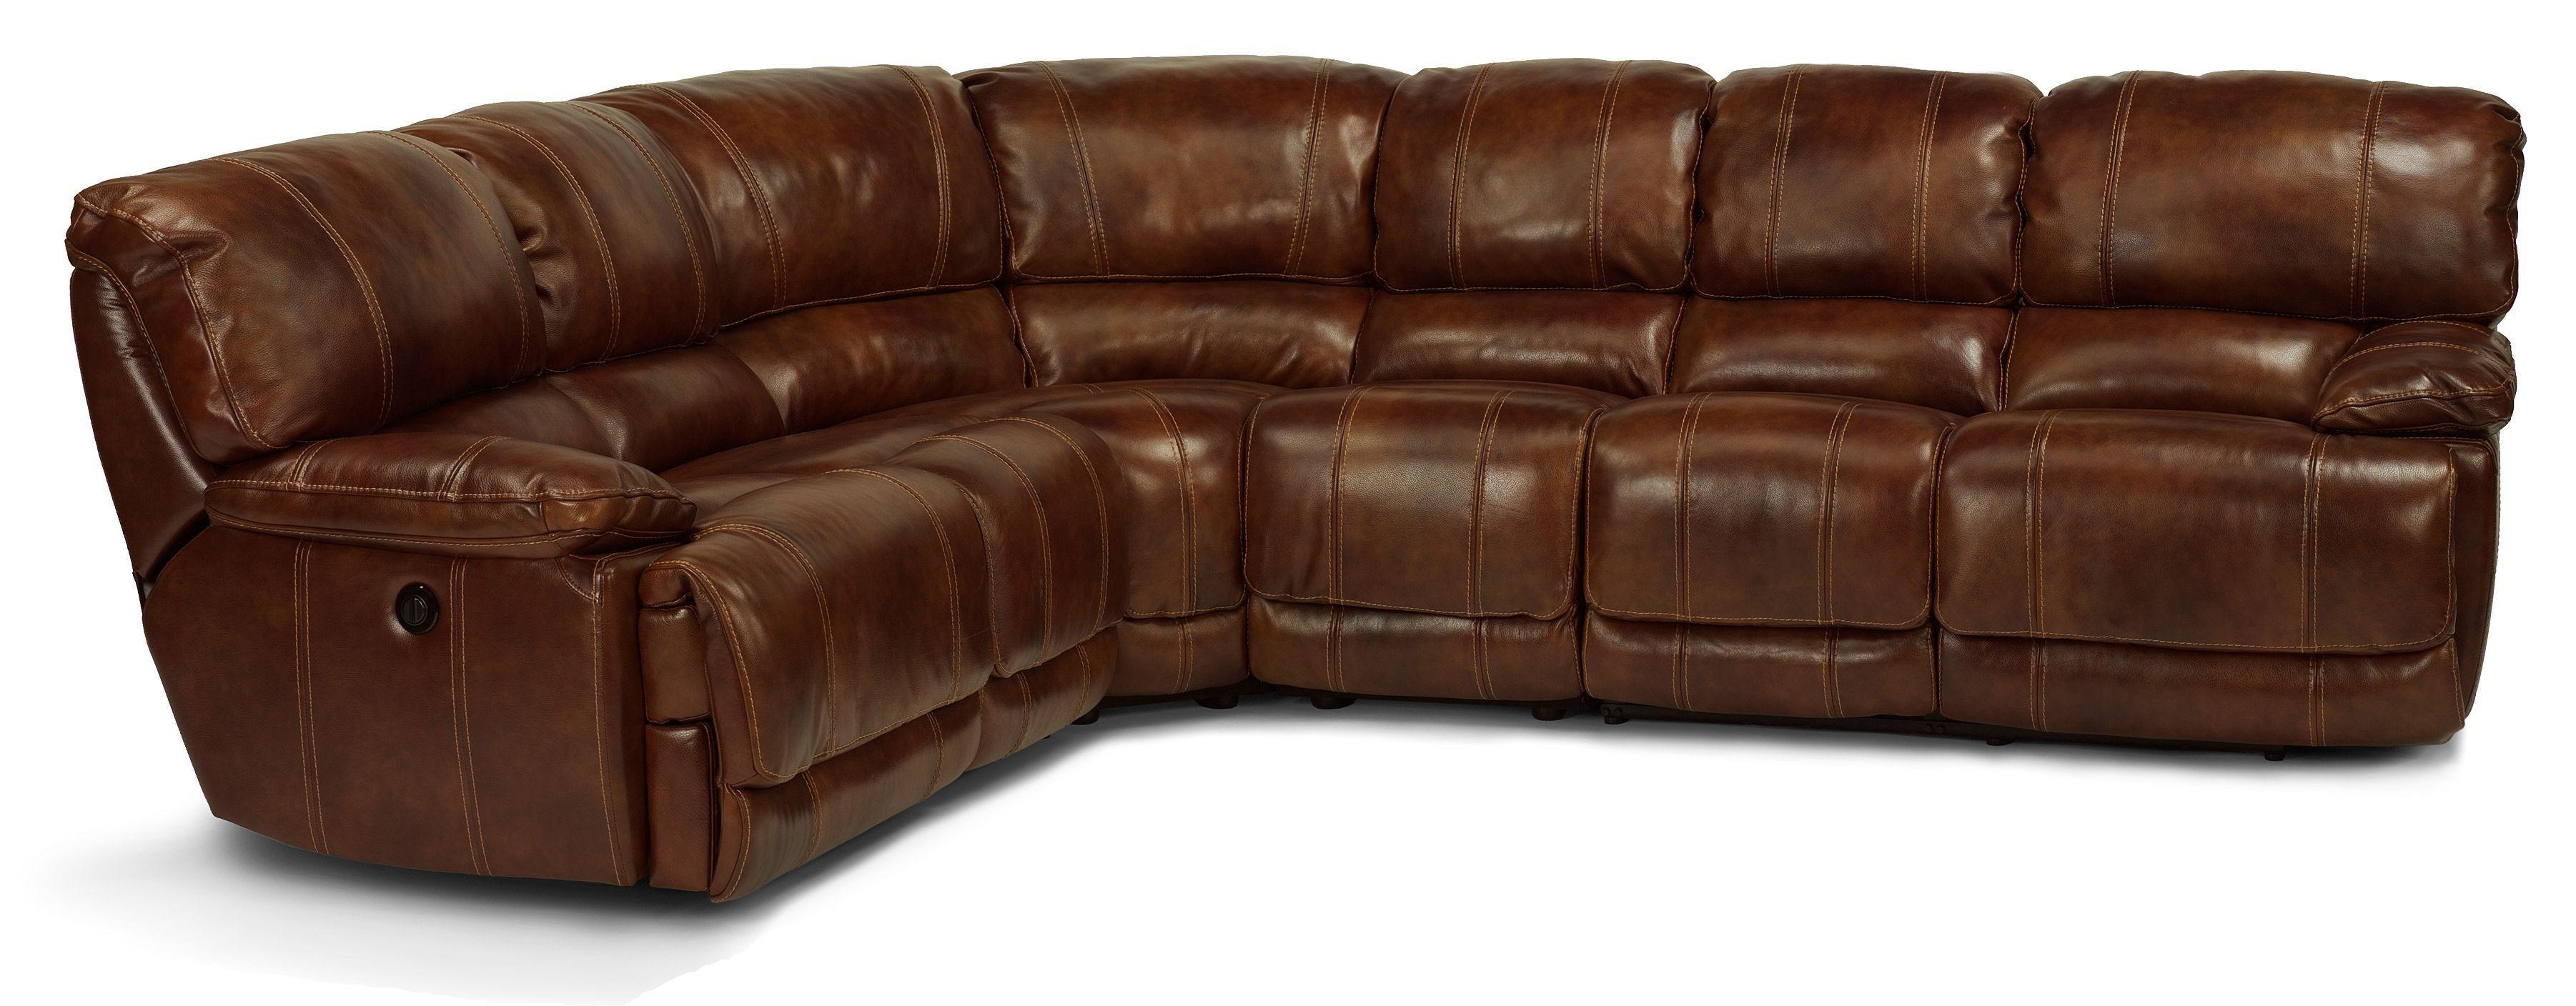 Latitudes Belmont 4 Pc Power Reclining Sectional Sofa By